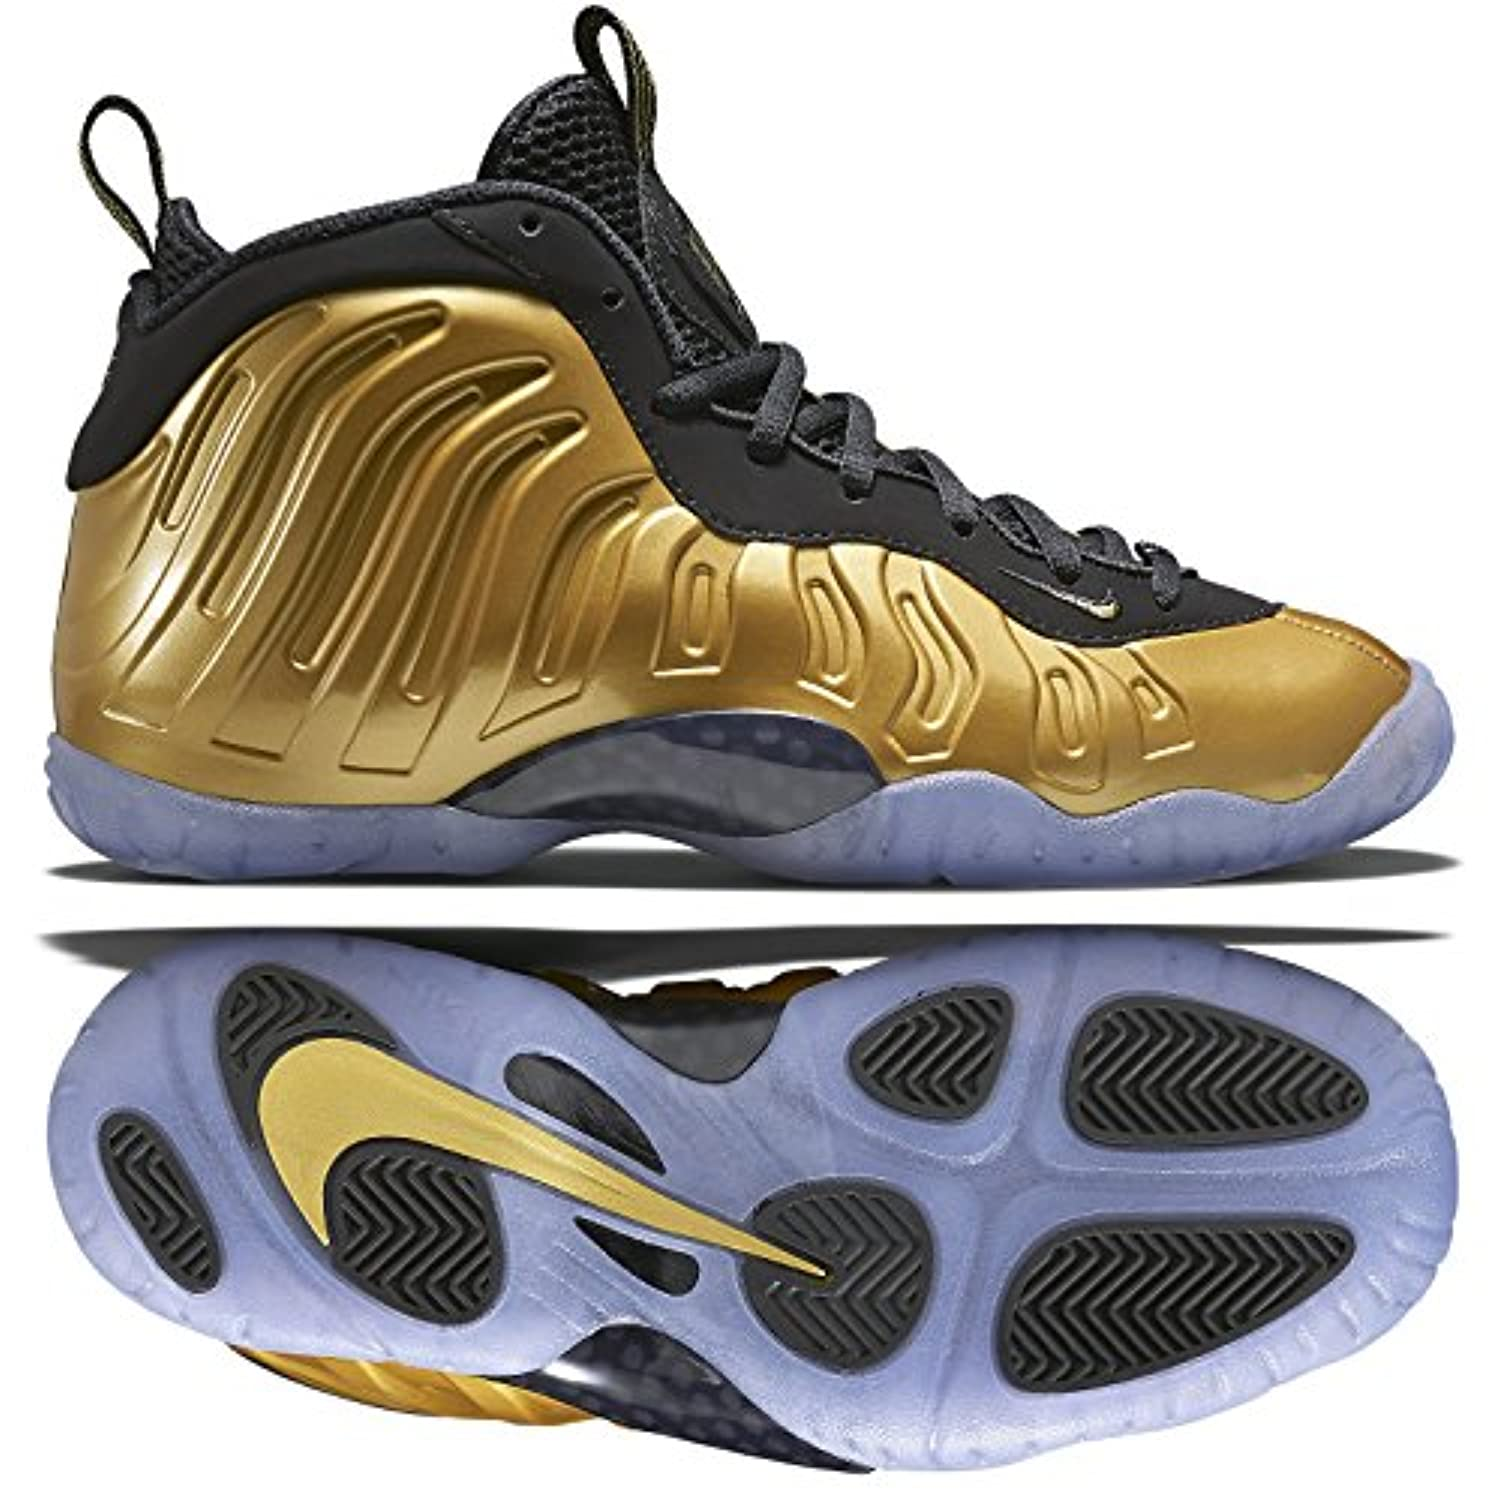 save off 32035 47d21 ... usa nike little posite one foamposite gs 644791 700 gold kids  basketball shoes size a877b ddc53